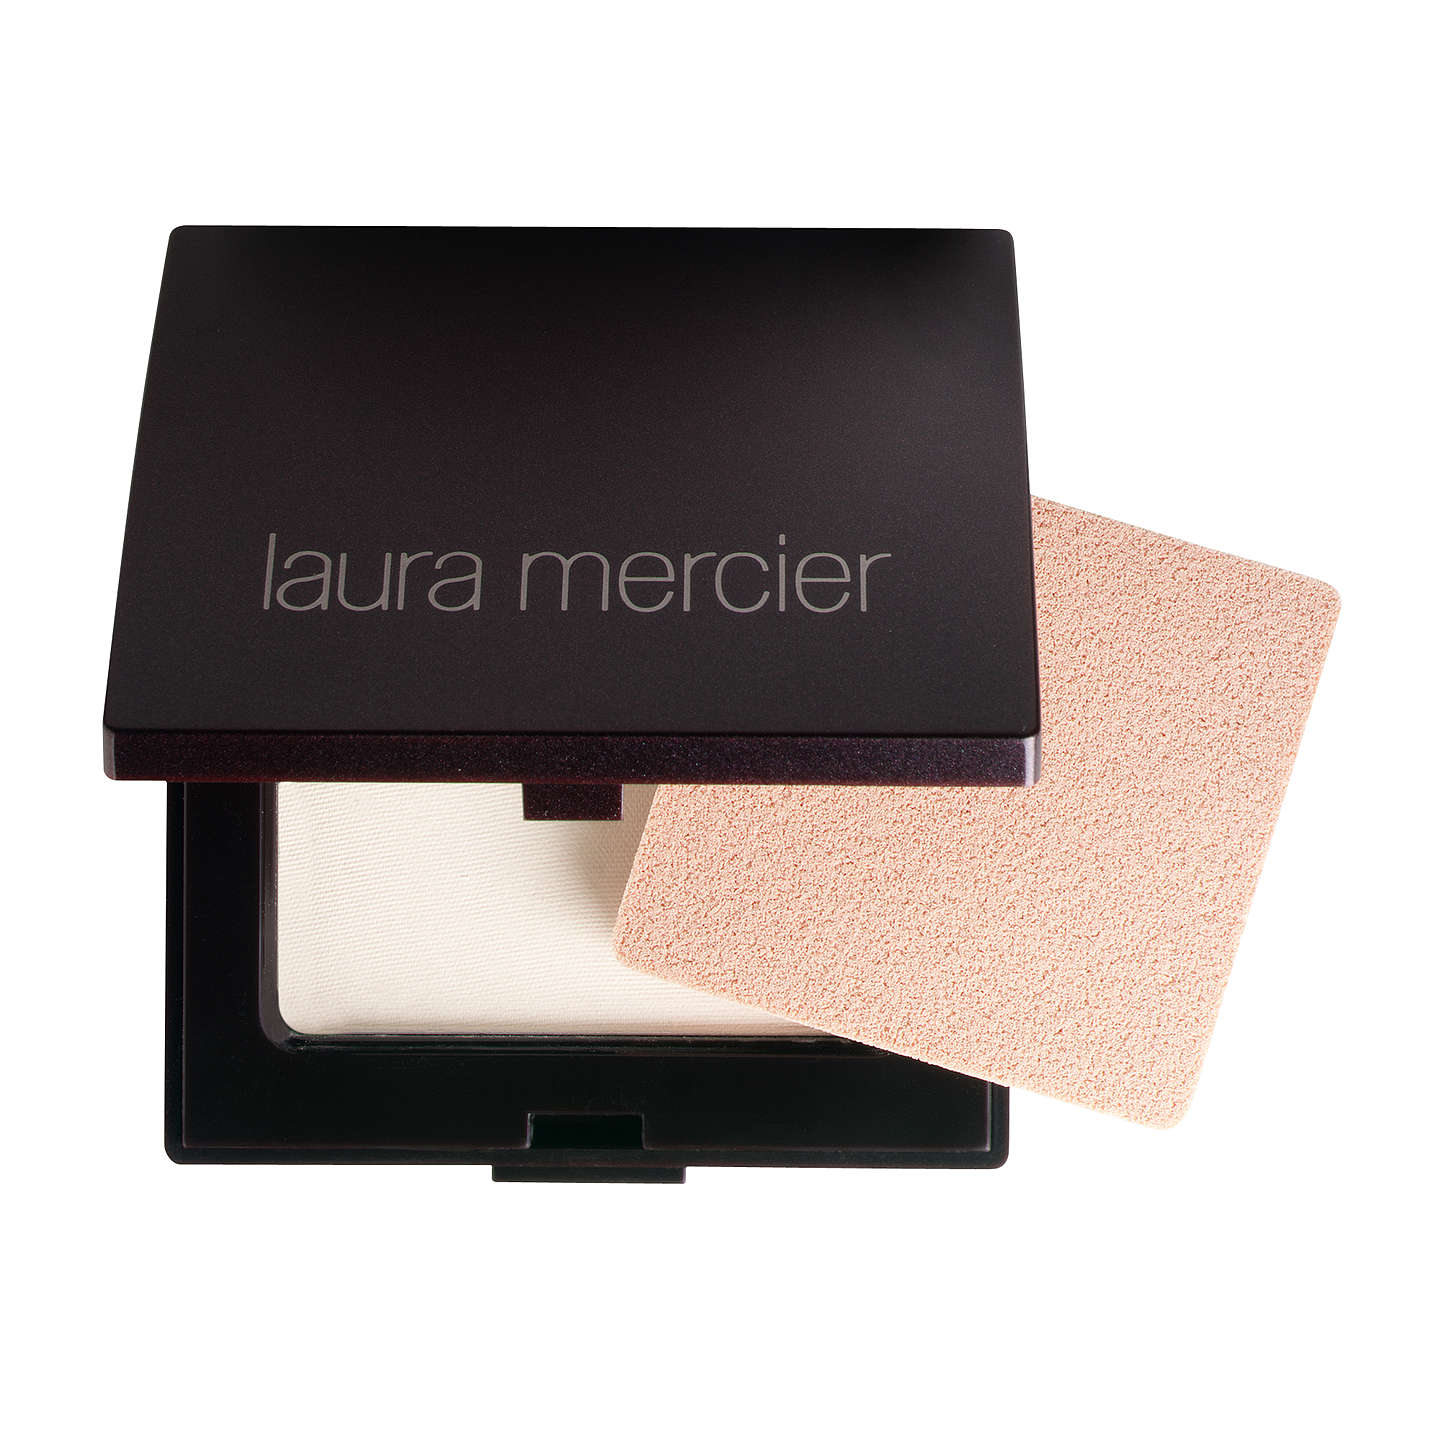 how to clean the laura mercier puff